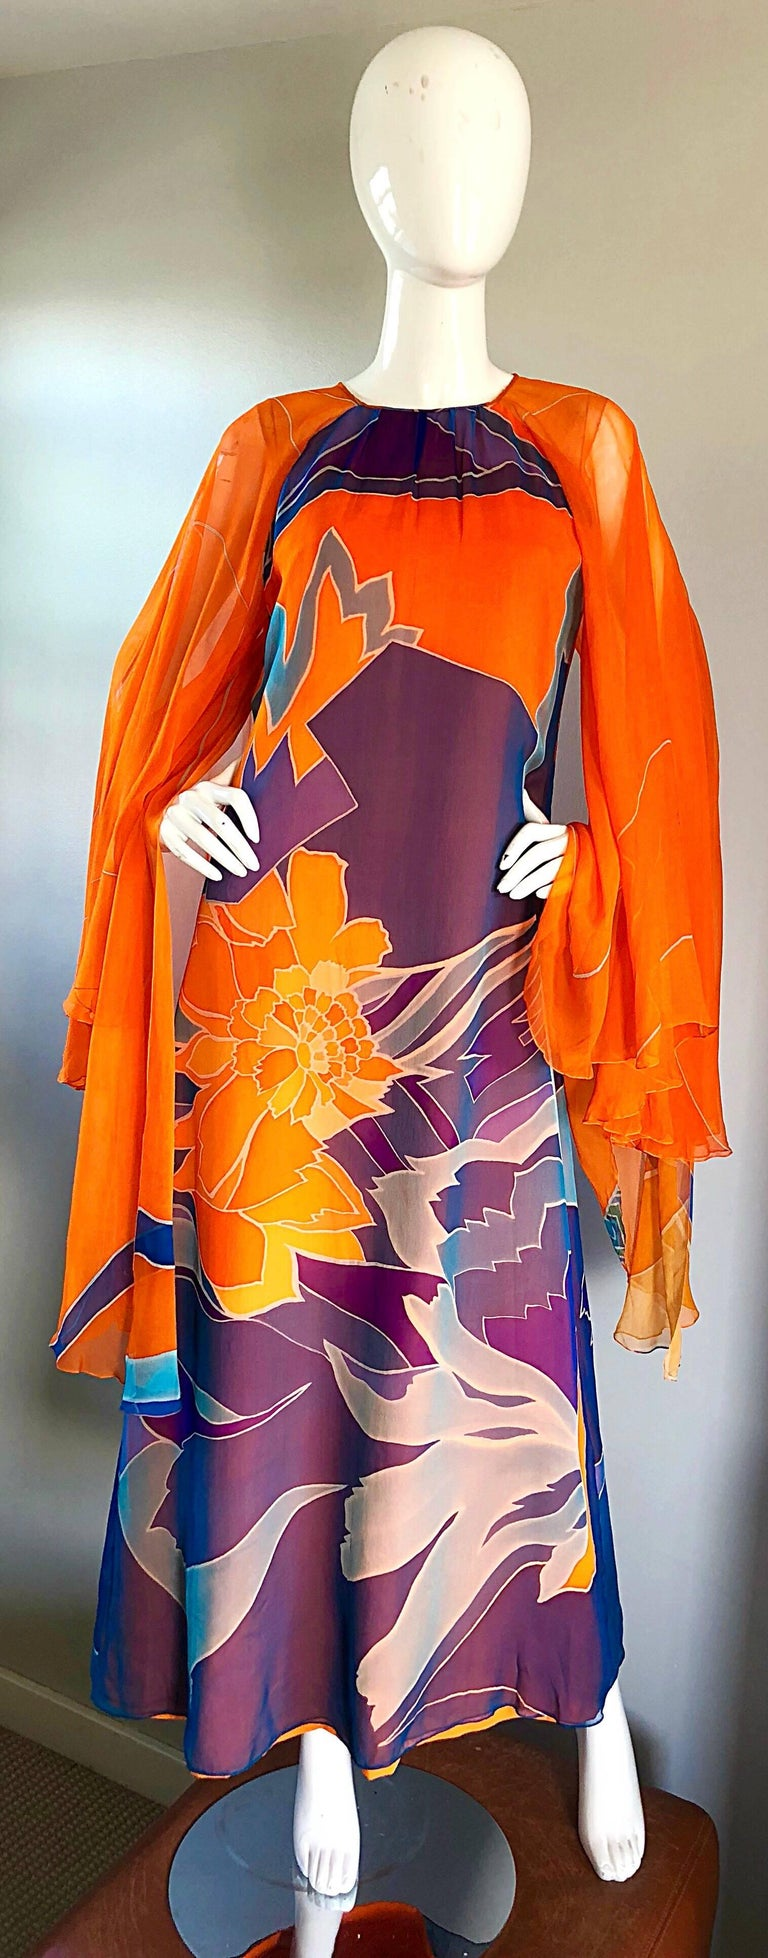 Sensational vintage 70s HANAE MORI COUTURE bright orange silk chiffon kaftan maxi dress! Features incredible dramatic wide angel wing sleeves, with layers and layers of semi sheer chiffon. Vibrant abstract prints in bright orange, purple, blue,